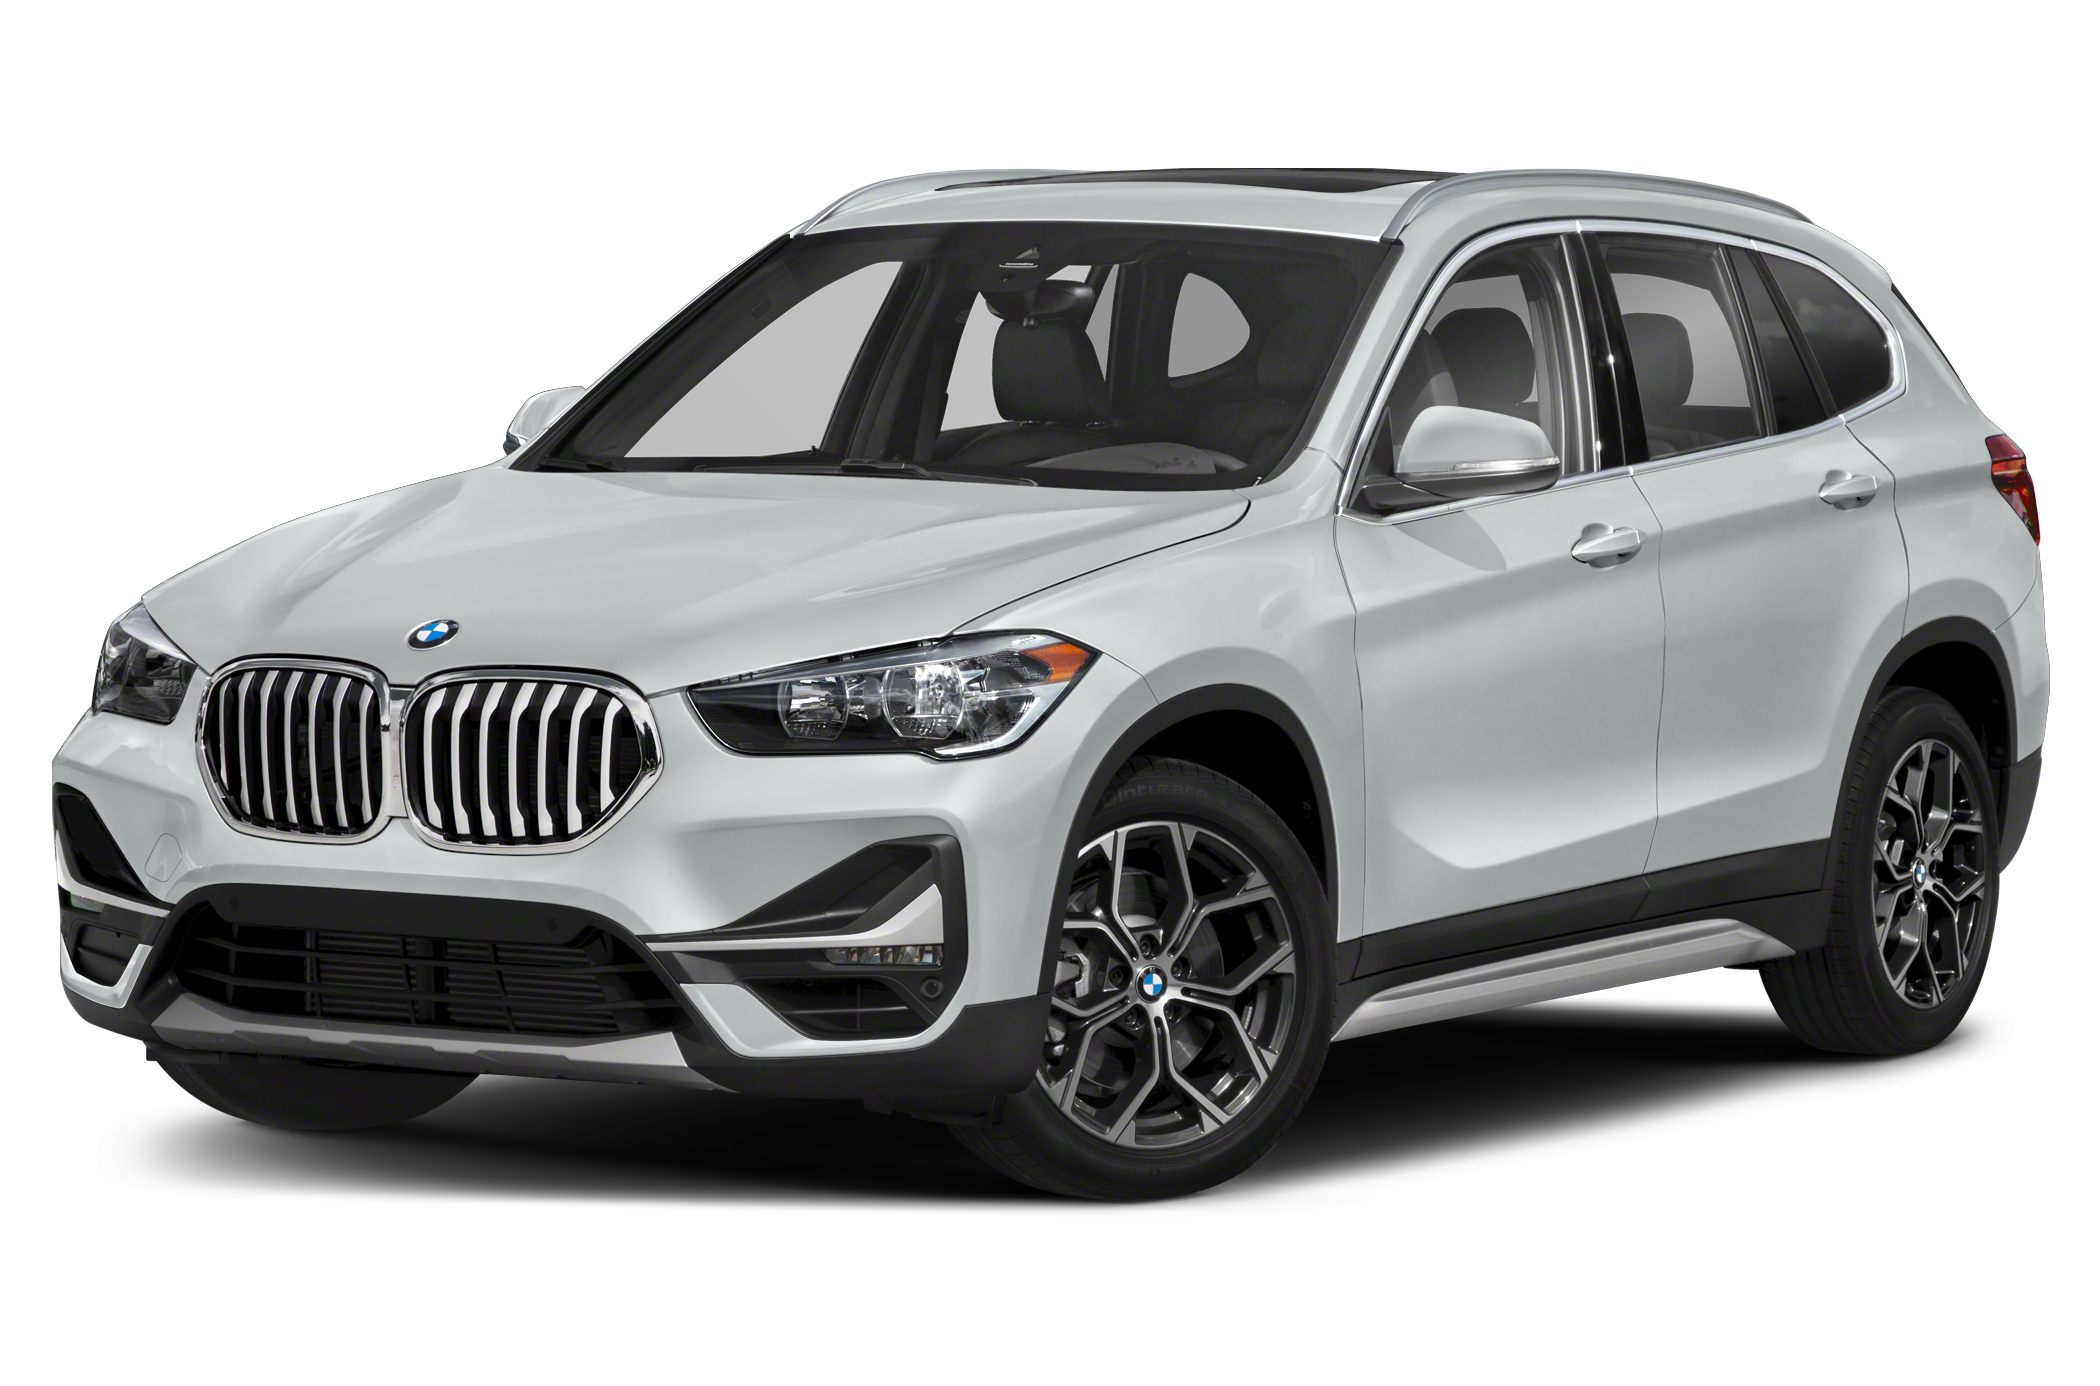 2020 Bmw X1 Xdrive28i 4dr All Wheel Drive Sports Activity Vehicle Pricing And Options